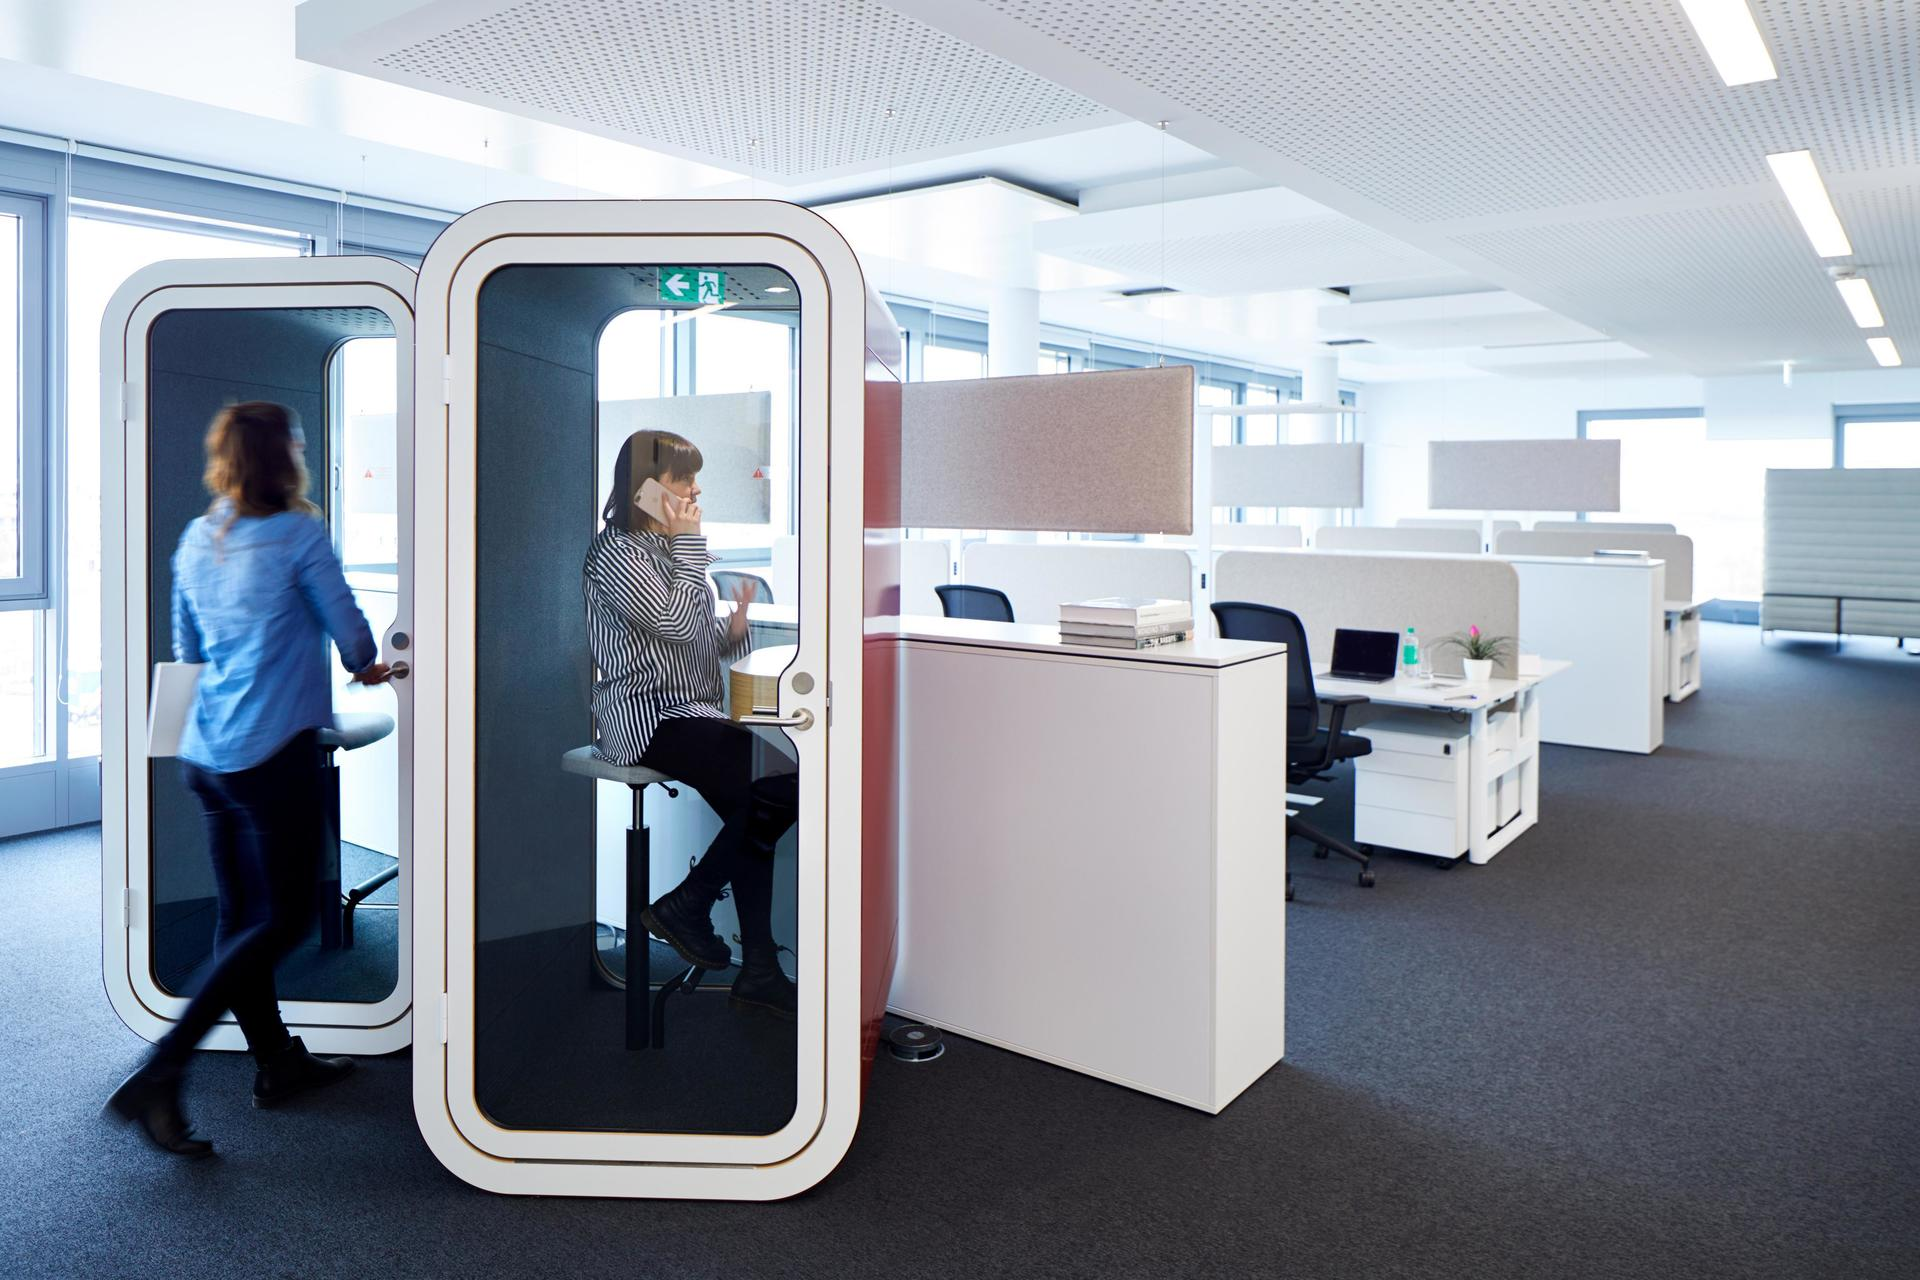 Open office environments encourage collaboration and teamwork. Incorporating the Framery O office pod would provide a private space for calls and conversations.